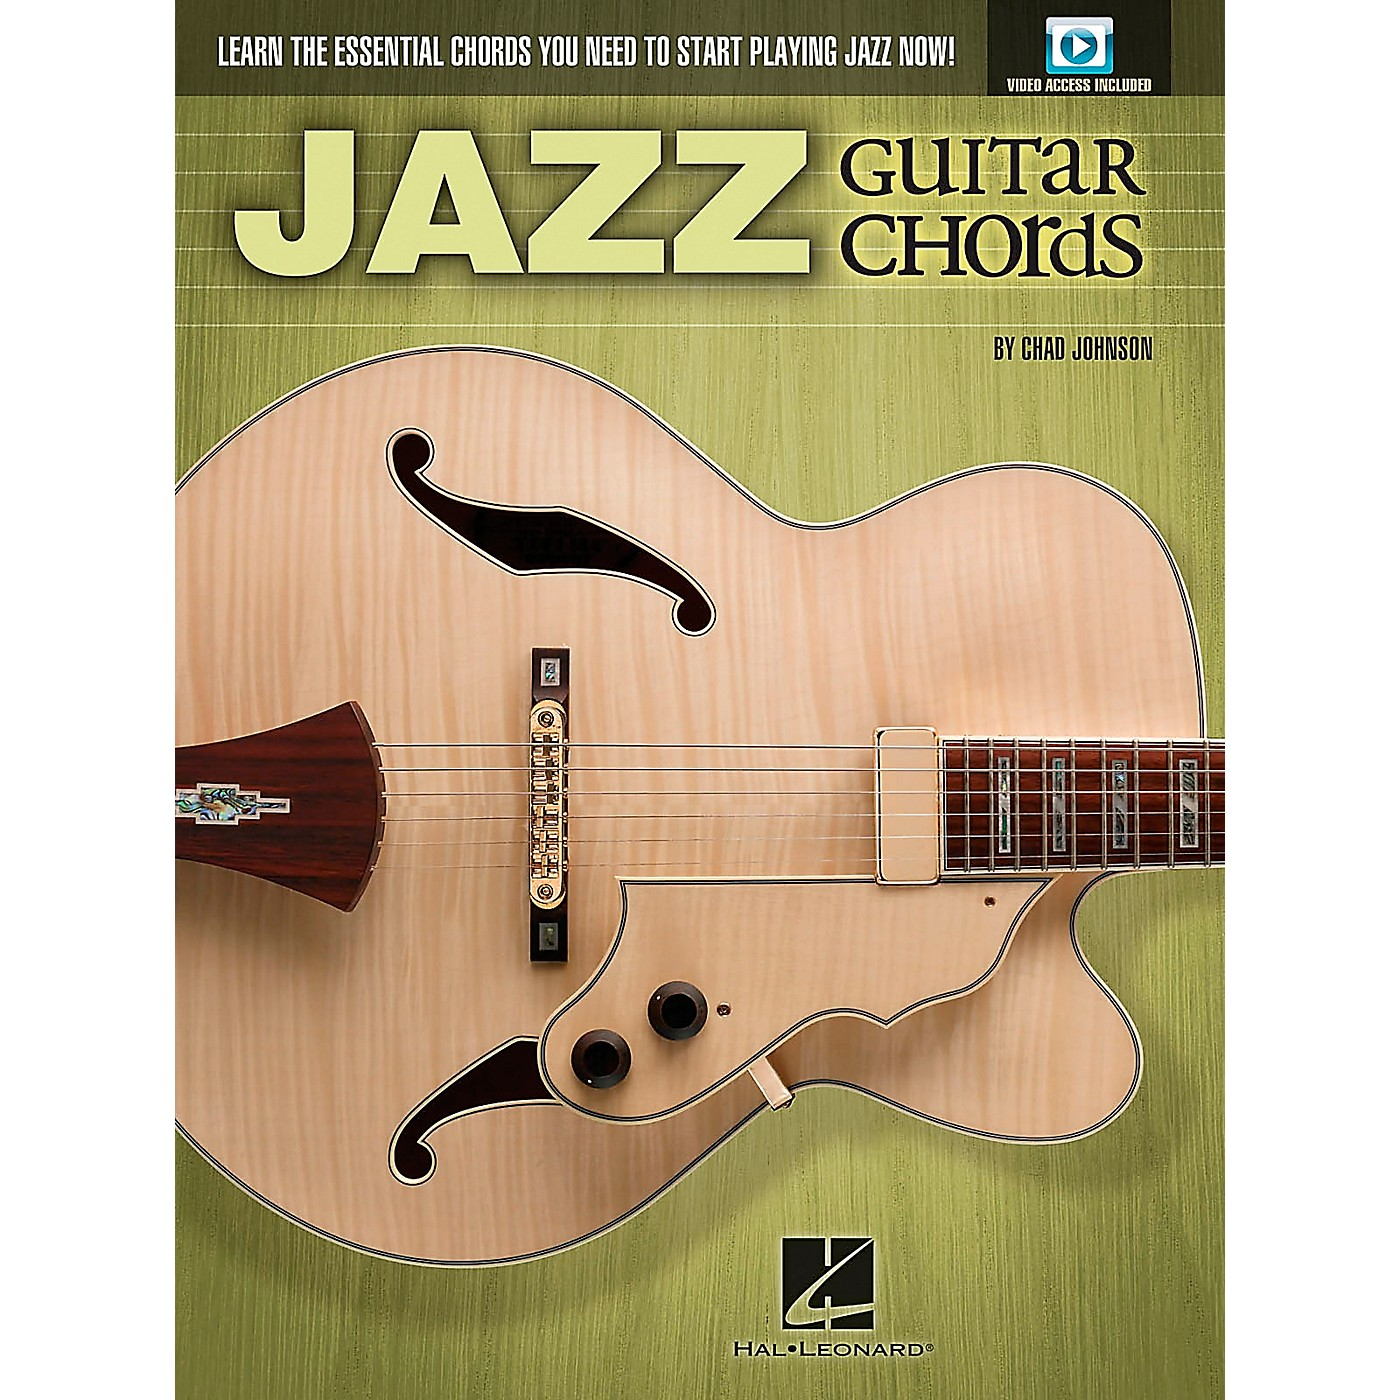 Hal Leonard Jazz Guitar Chords - Learn the Essential Chords You Need to Start Playing Jazz Now! Book/DVD thumbnail